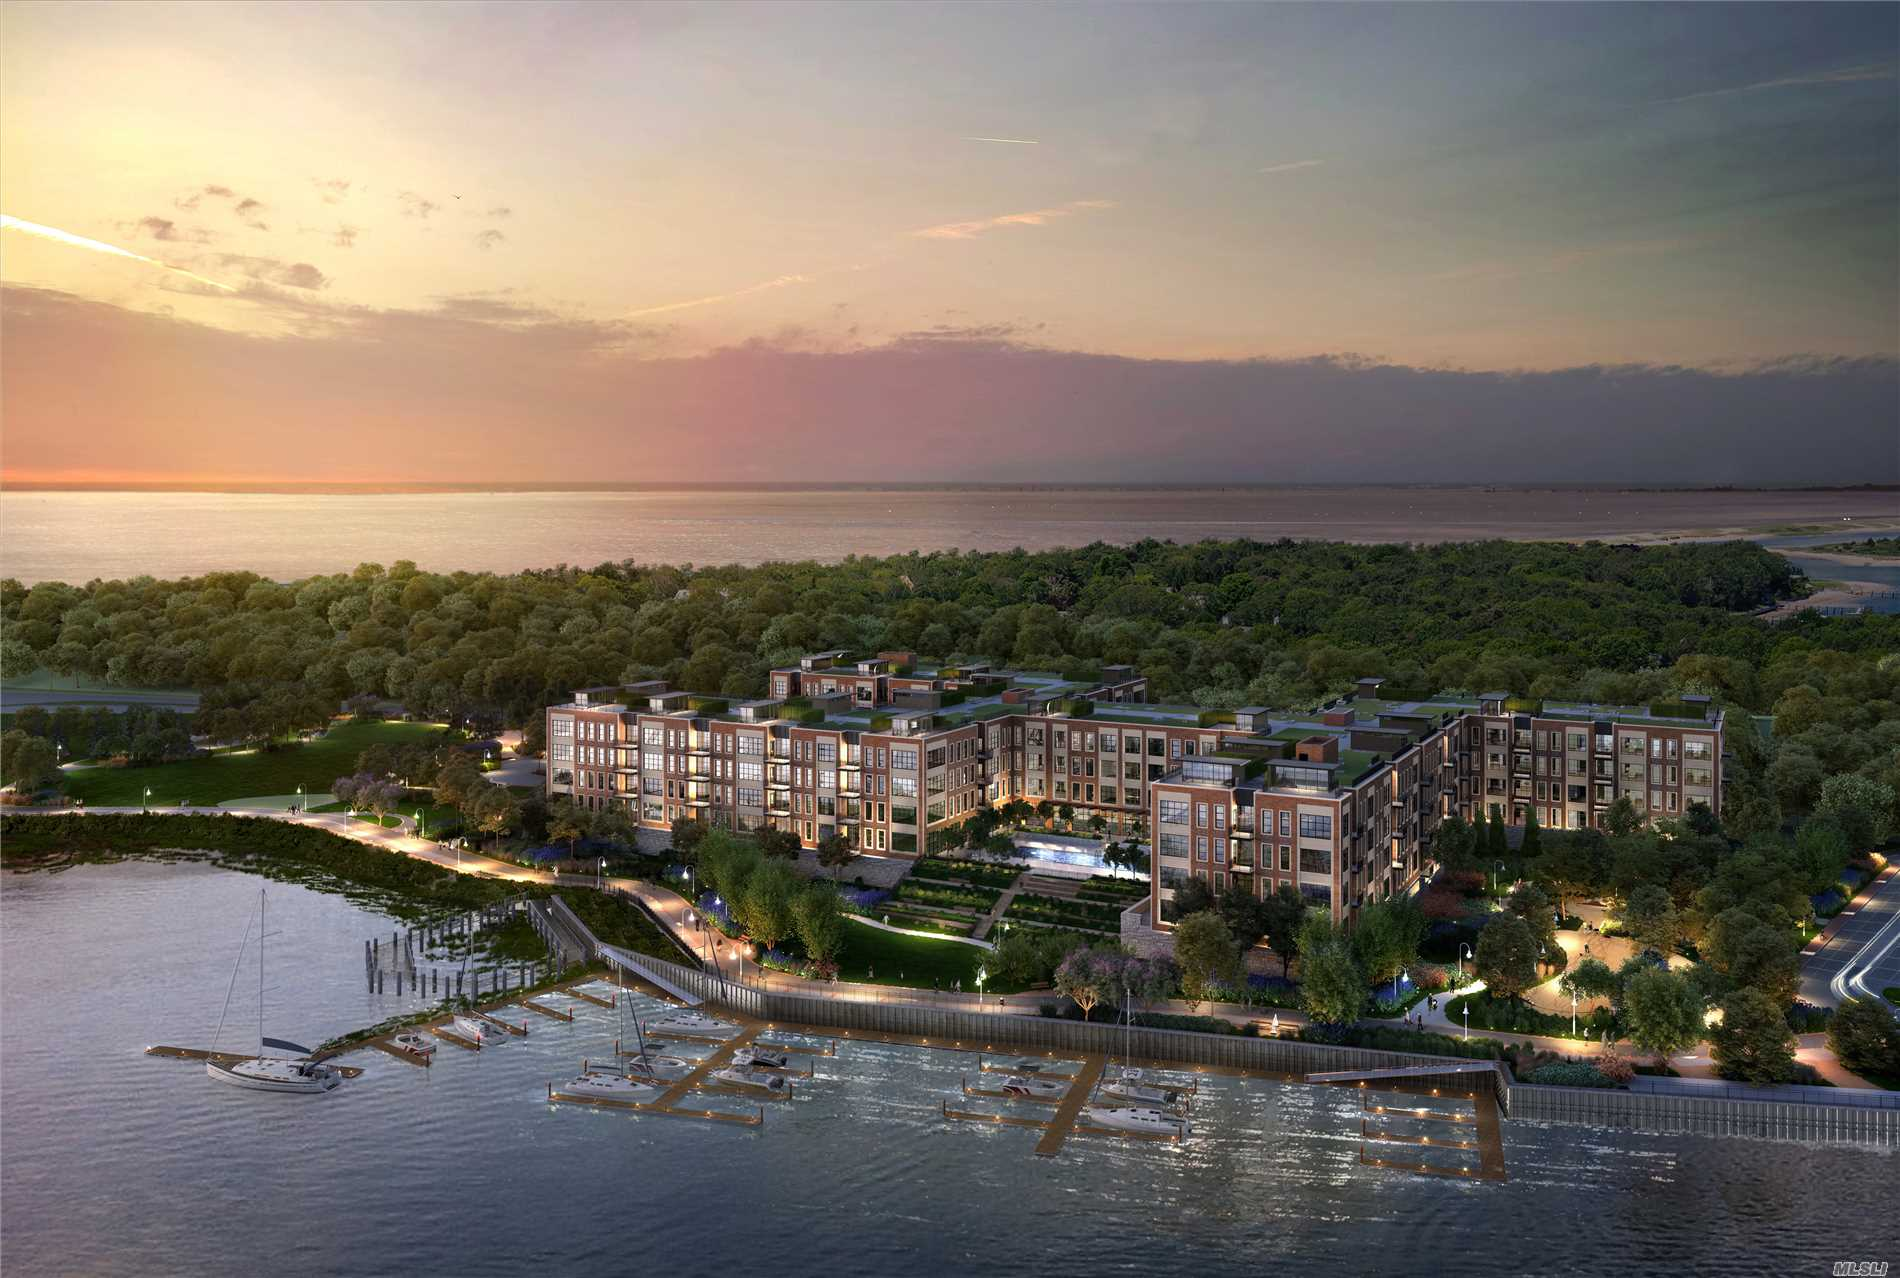 Property for sale at 100 Garvies Point Road # 1332, Glen Cove NY 11542, Glen Cove,  New York 11542